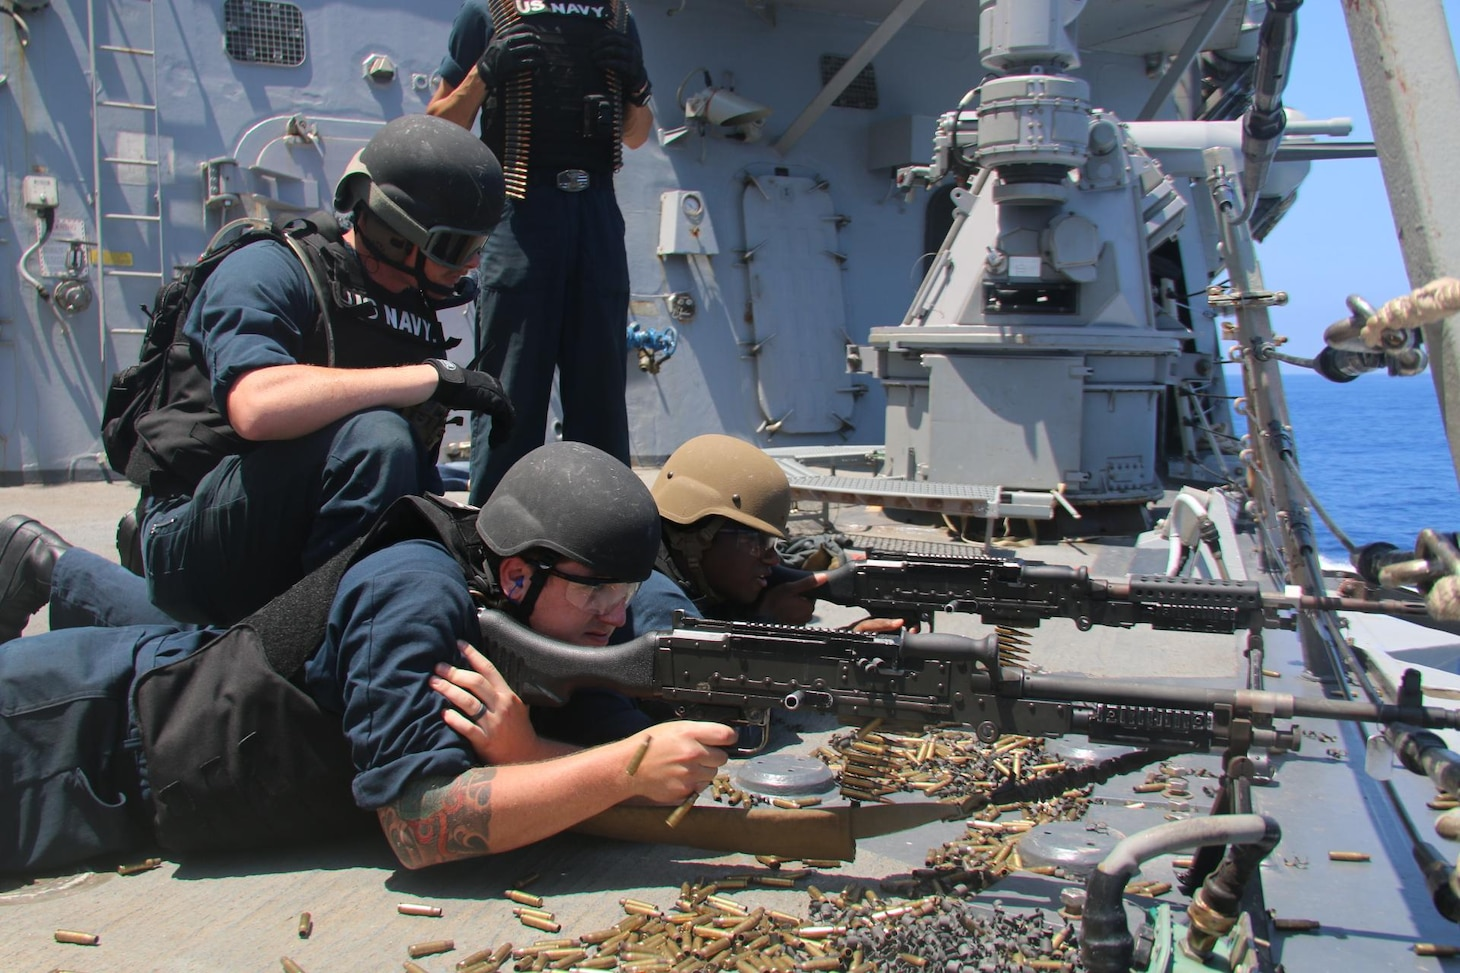 (July 4, 2021) Sailors aboard the Arleigh Burke-class guided-missile destroyer USS Donald Cook (DDG 75) man M240 machine guns during live fire gunnery exercises,  July 04, 2021. Donald Cook is on a scheduled deployment in the U.S. Sixth Fleet area of operations in support of U.S. national interests and security in Europe and Africa.